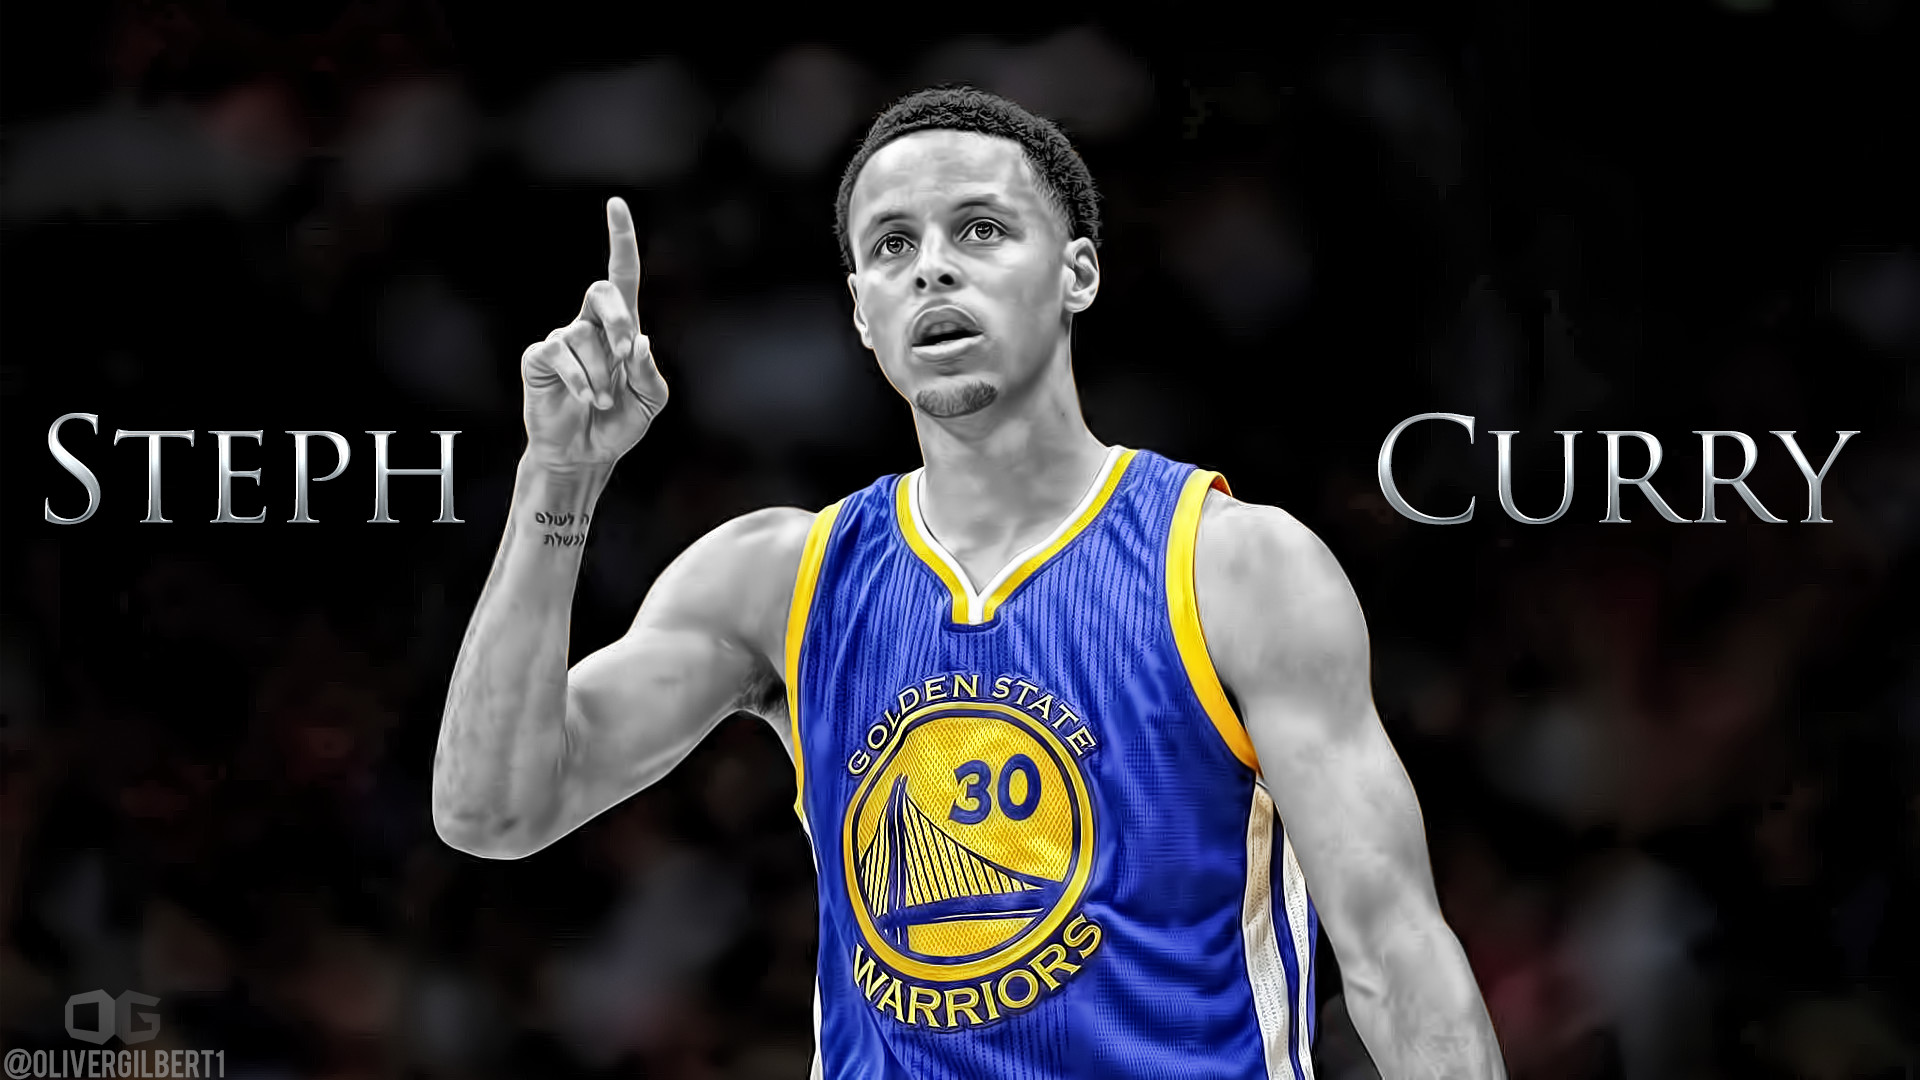 steph curry wallpaper by hecziaa watch customization wallpaper hdtv .